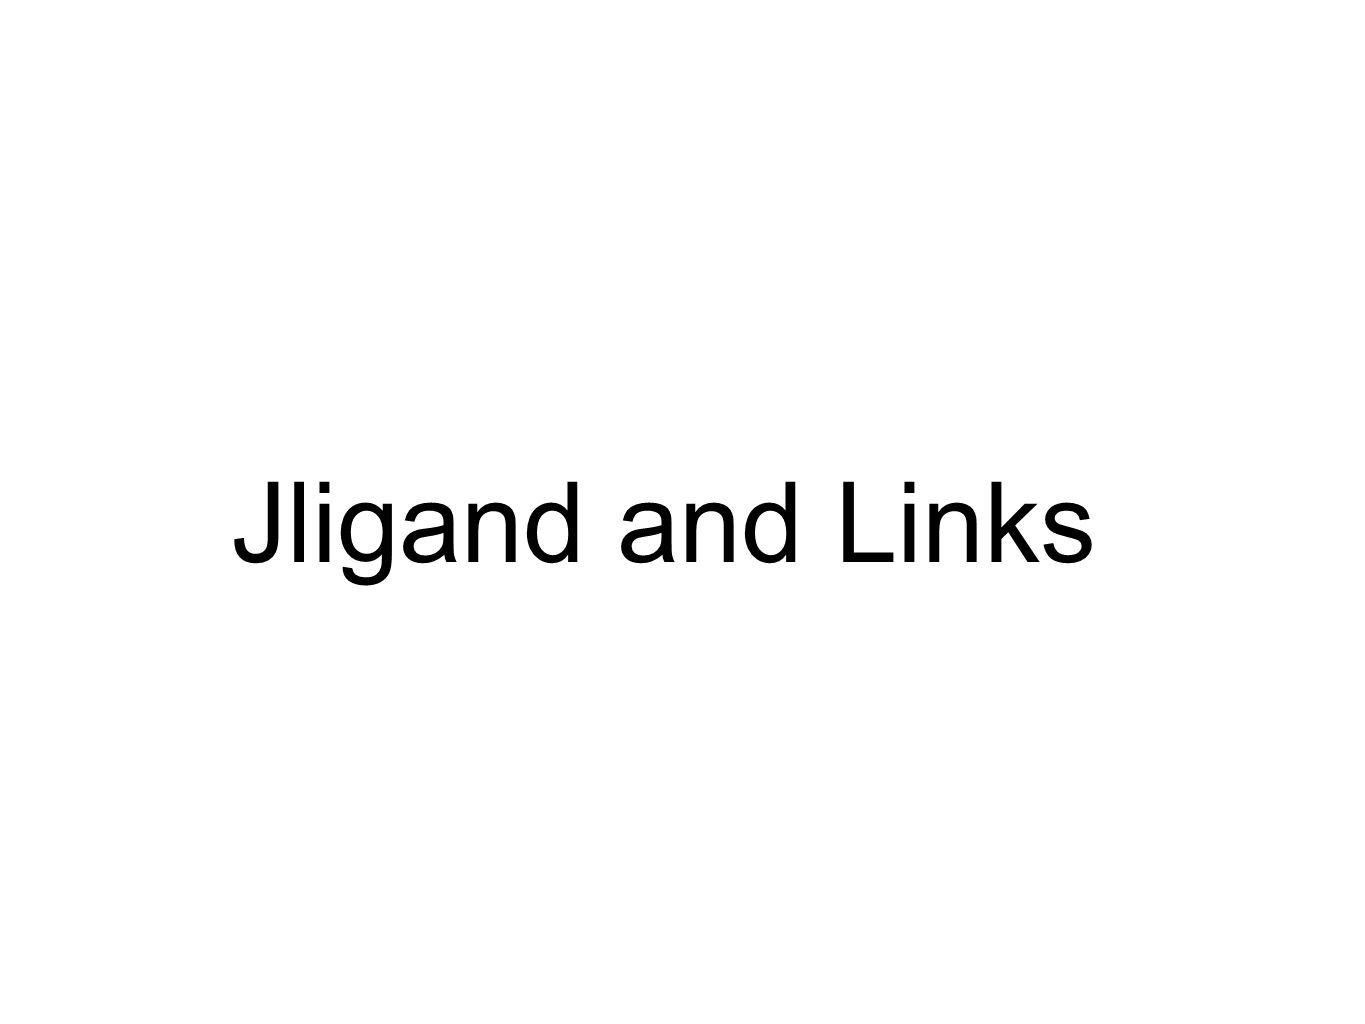 Jligand and Links